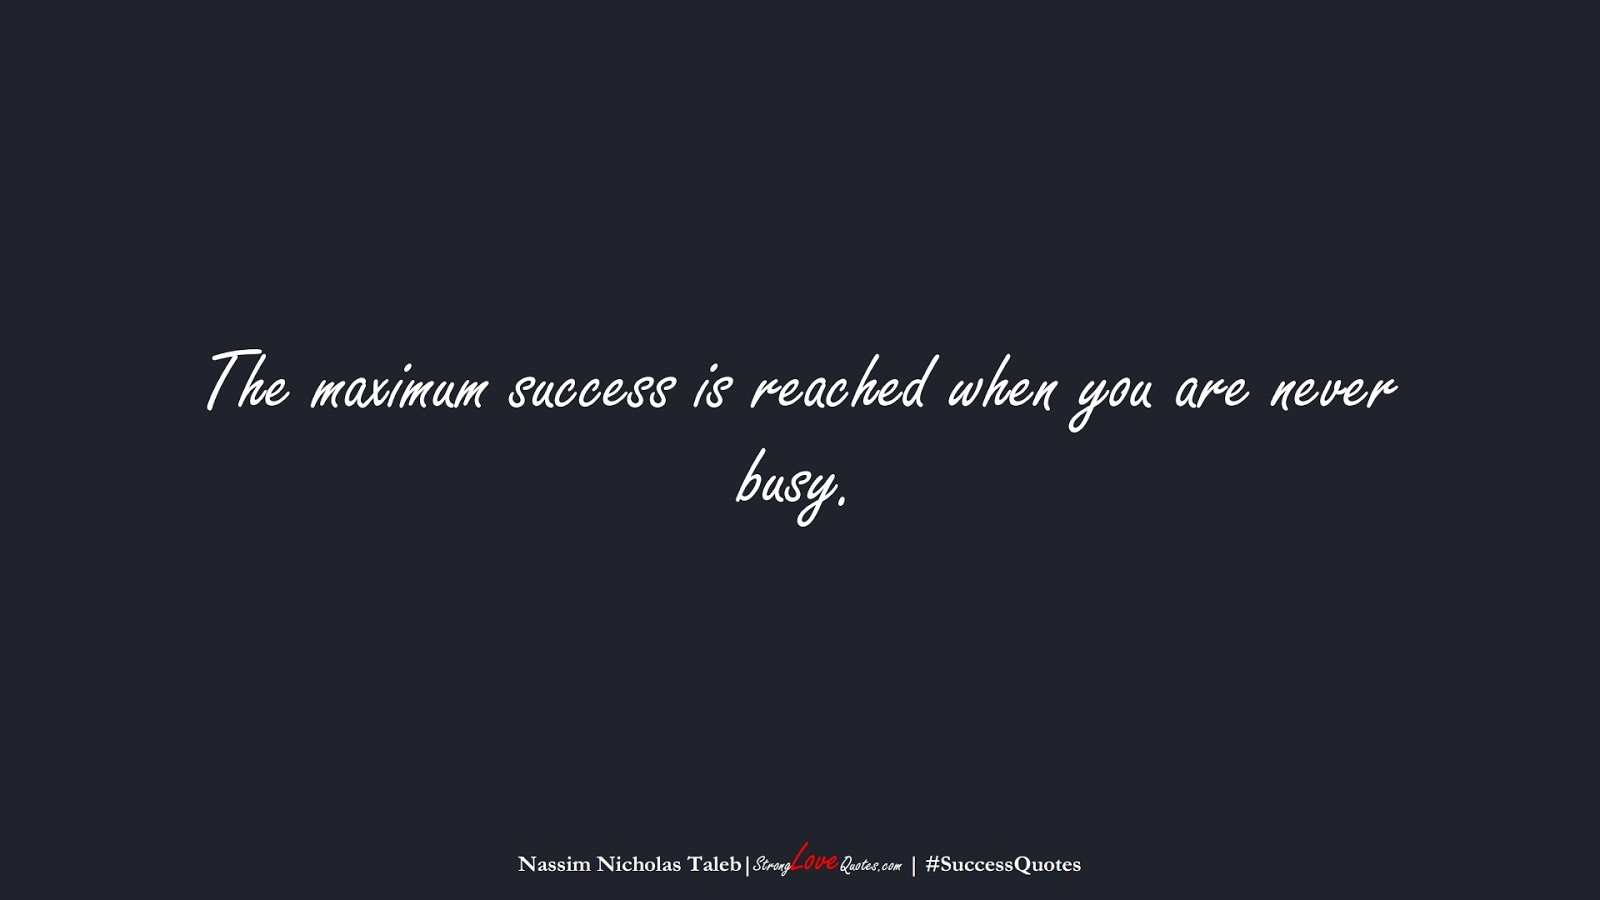 The maximum success is reached when you are never busy. (Nassim Nicholas Taleb);  #SuccessQuotes